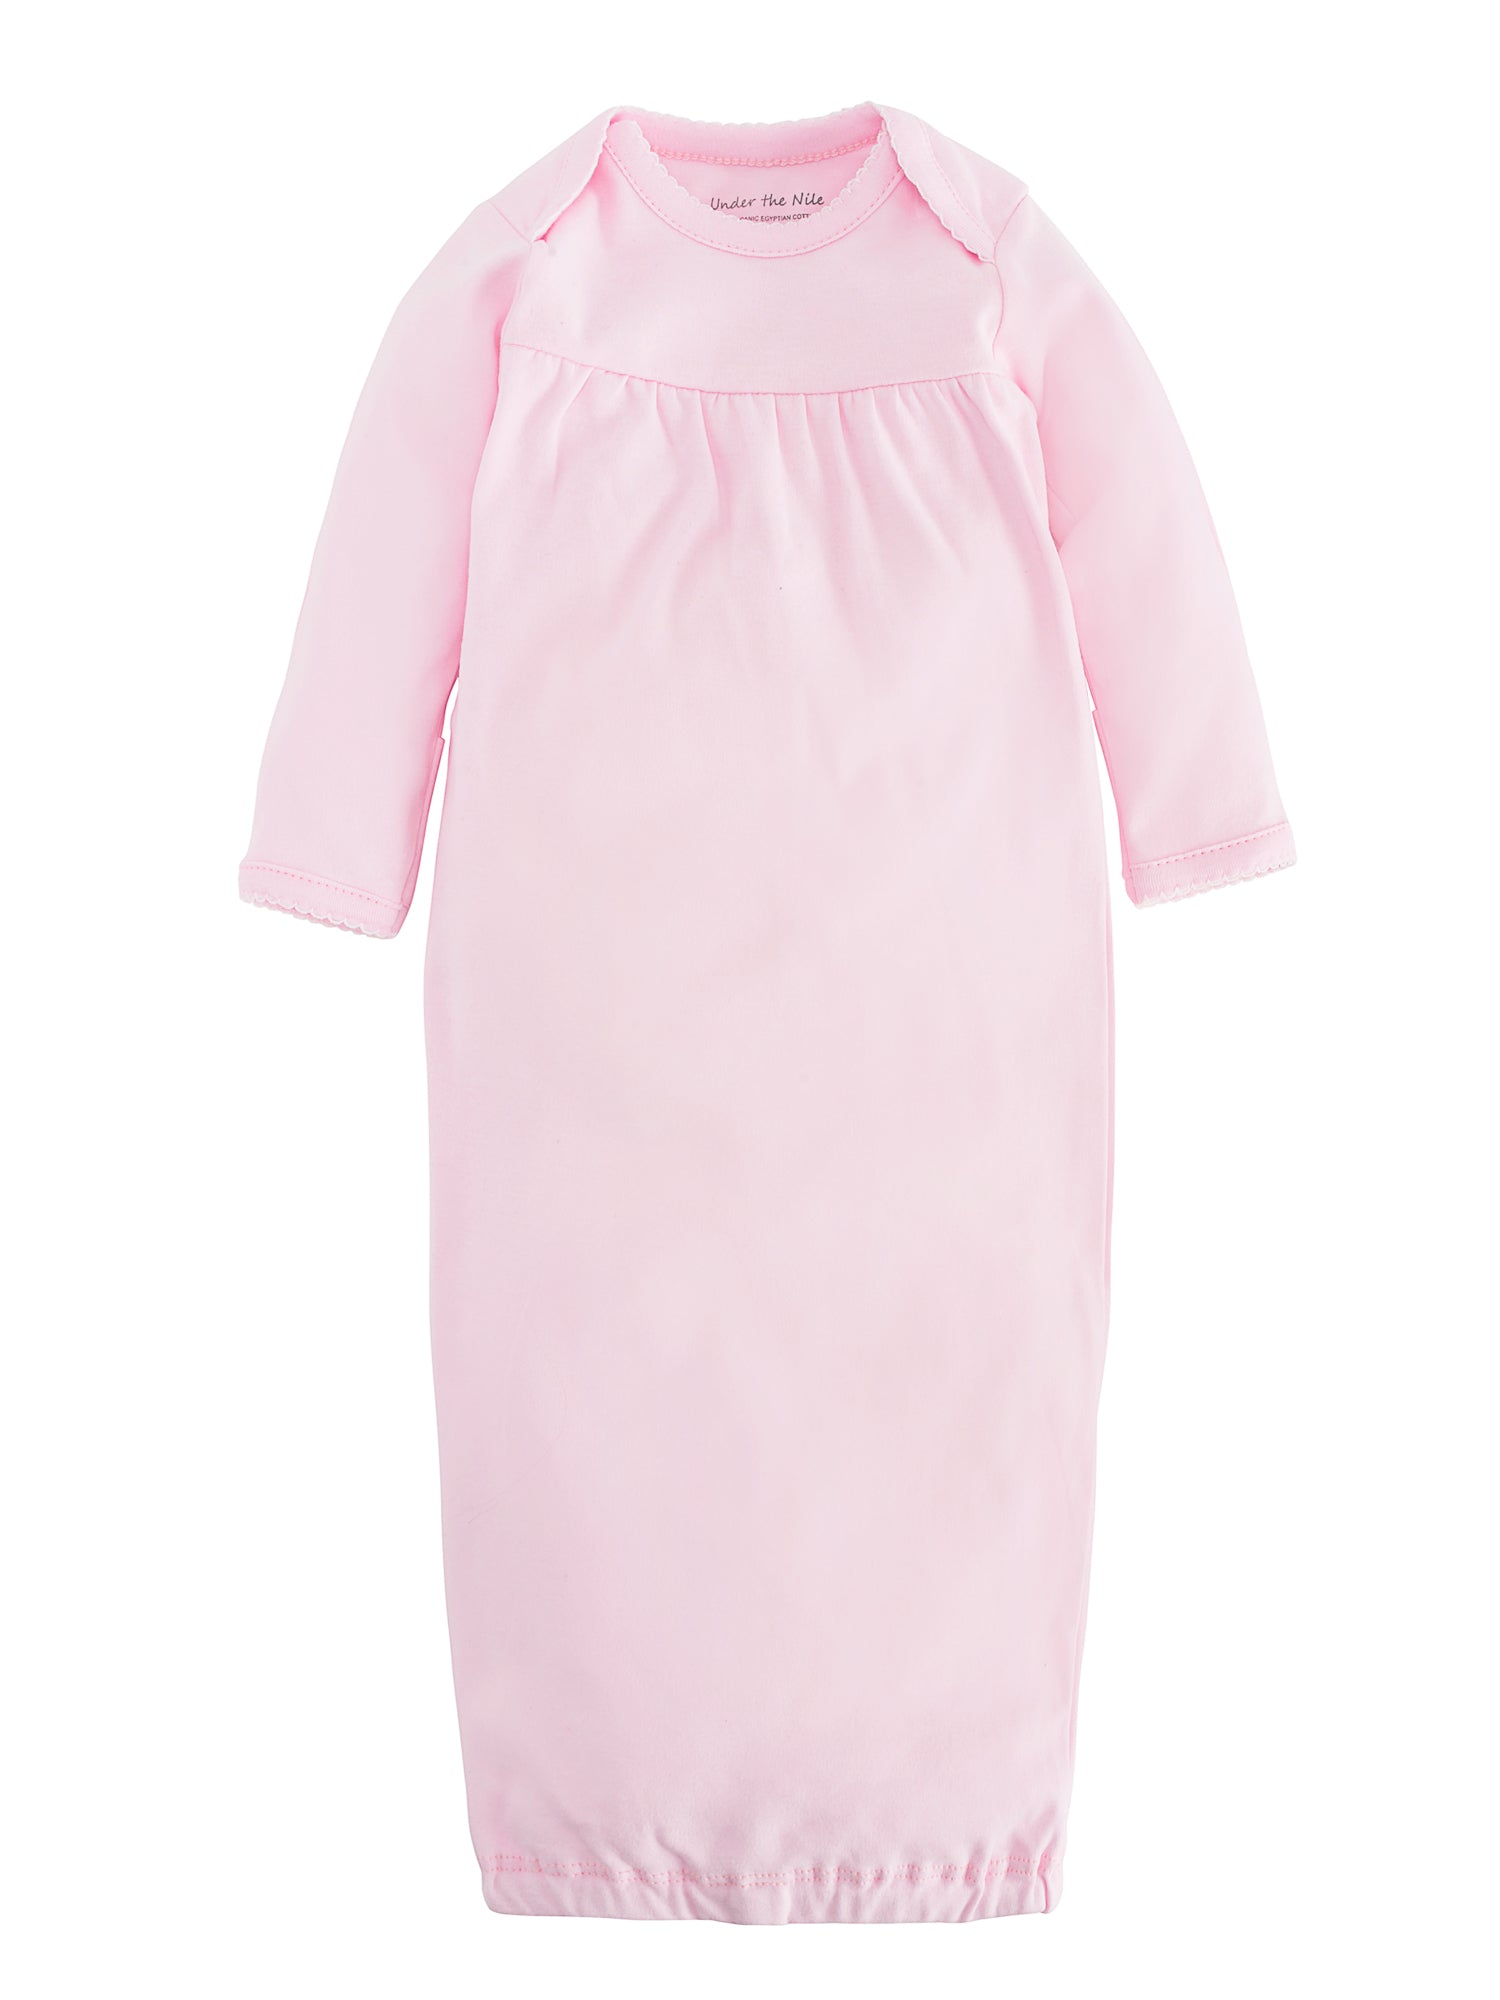 Organic Cotton Pink Baby Girl Gown Size 0-3m – Under the Nile